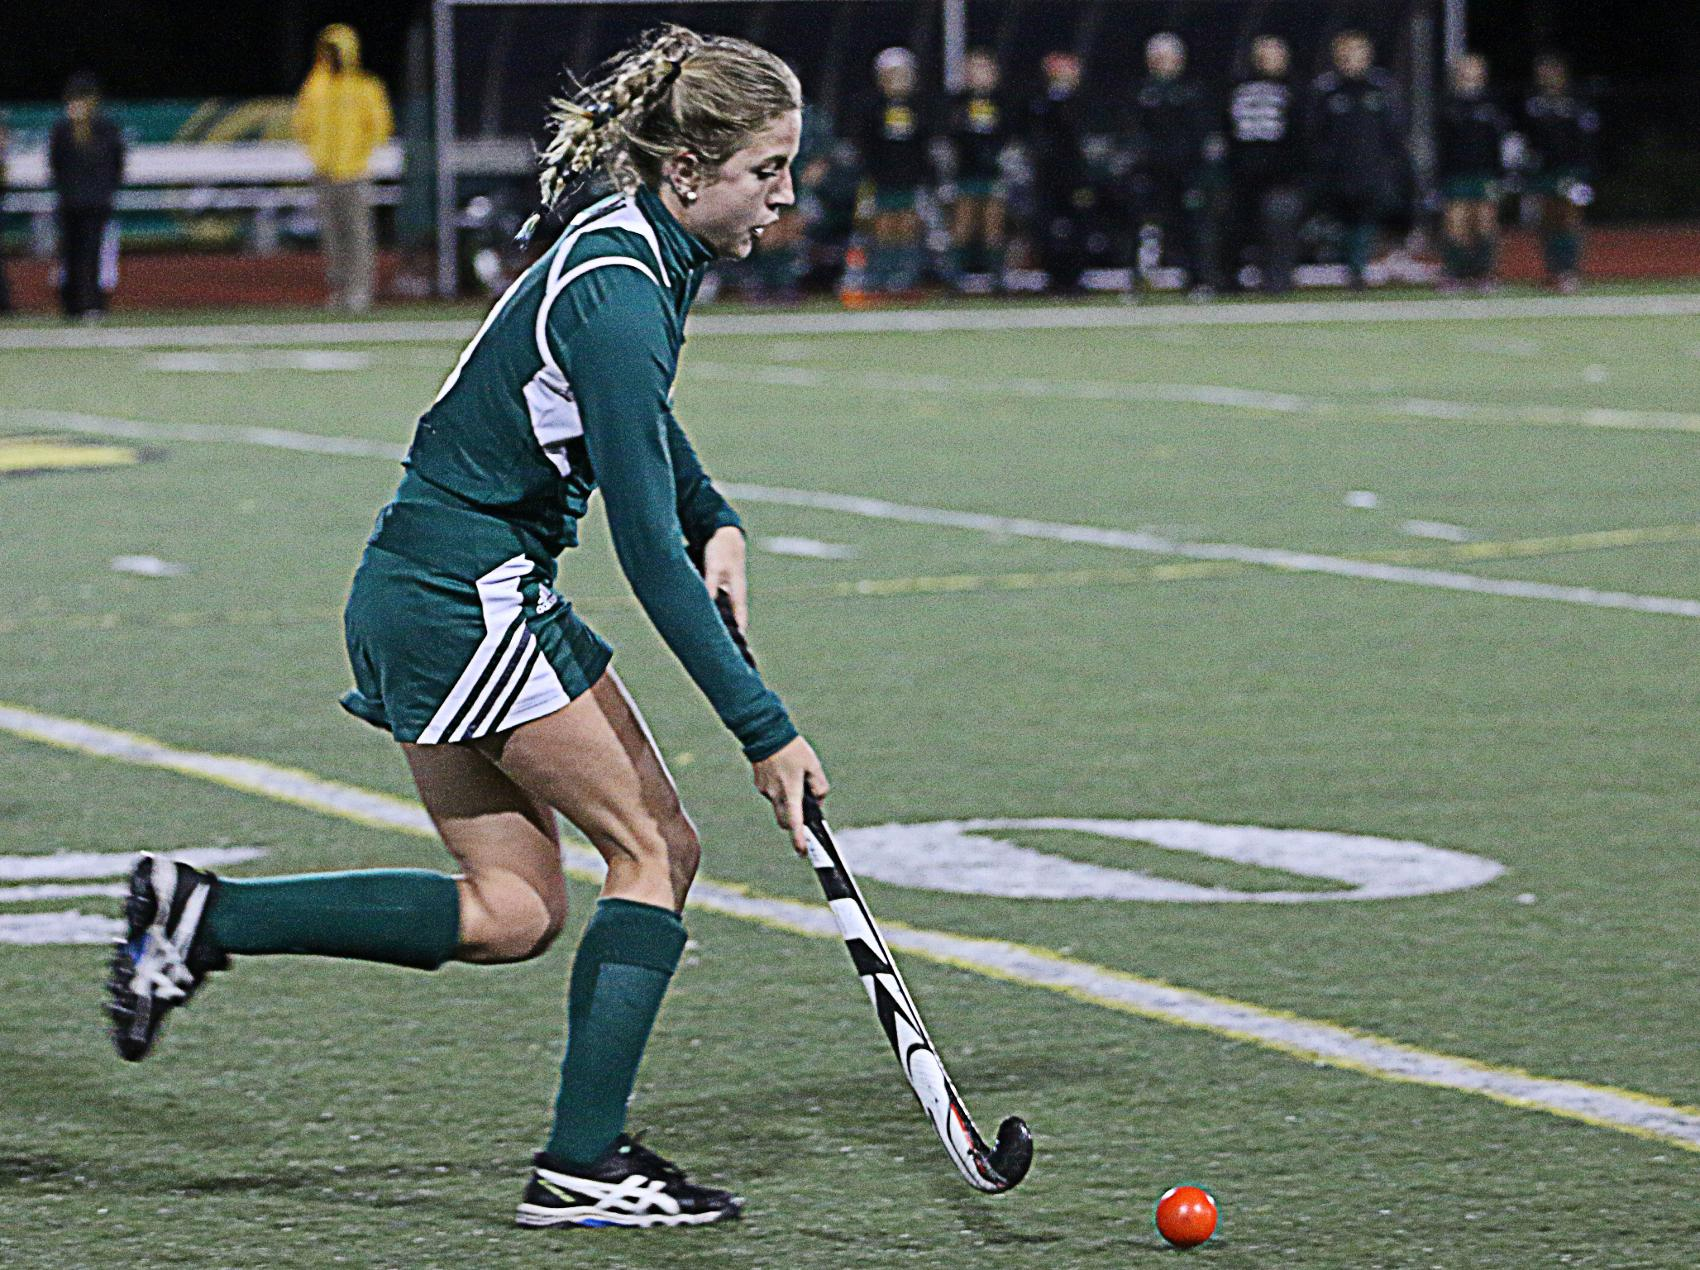 Fitchburg State Defeats Eastern Connecticut State, 2-1